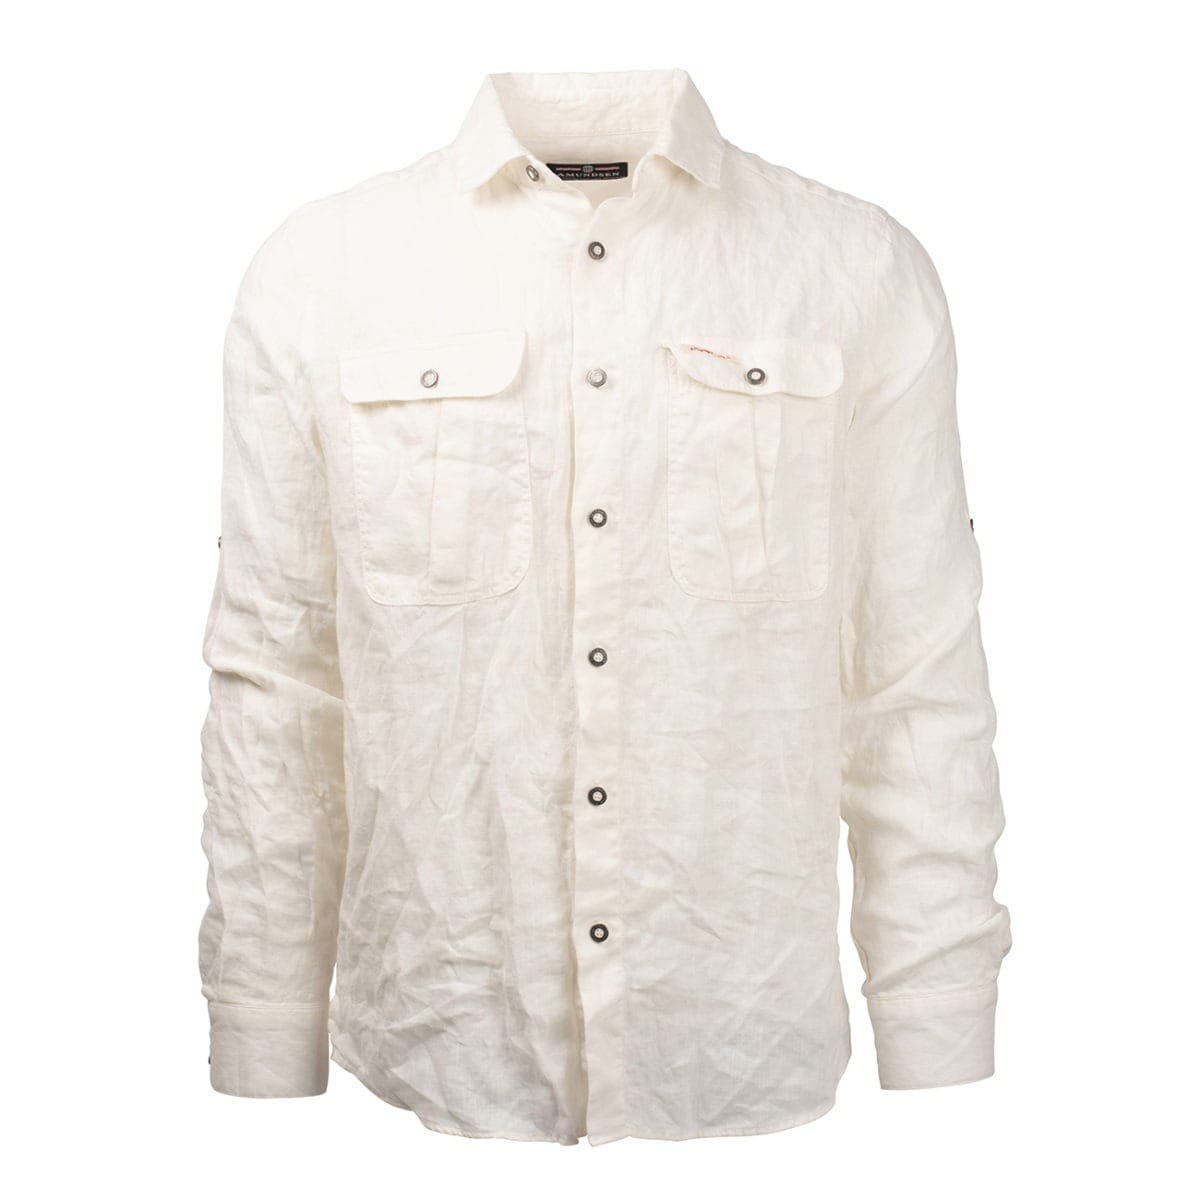 Amundsen Sports Safari Linen Shirt G. Dyed M's